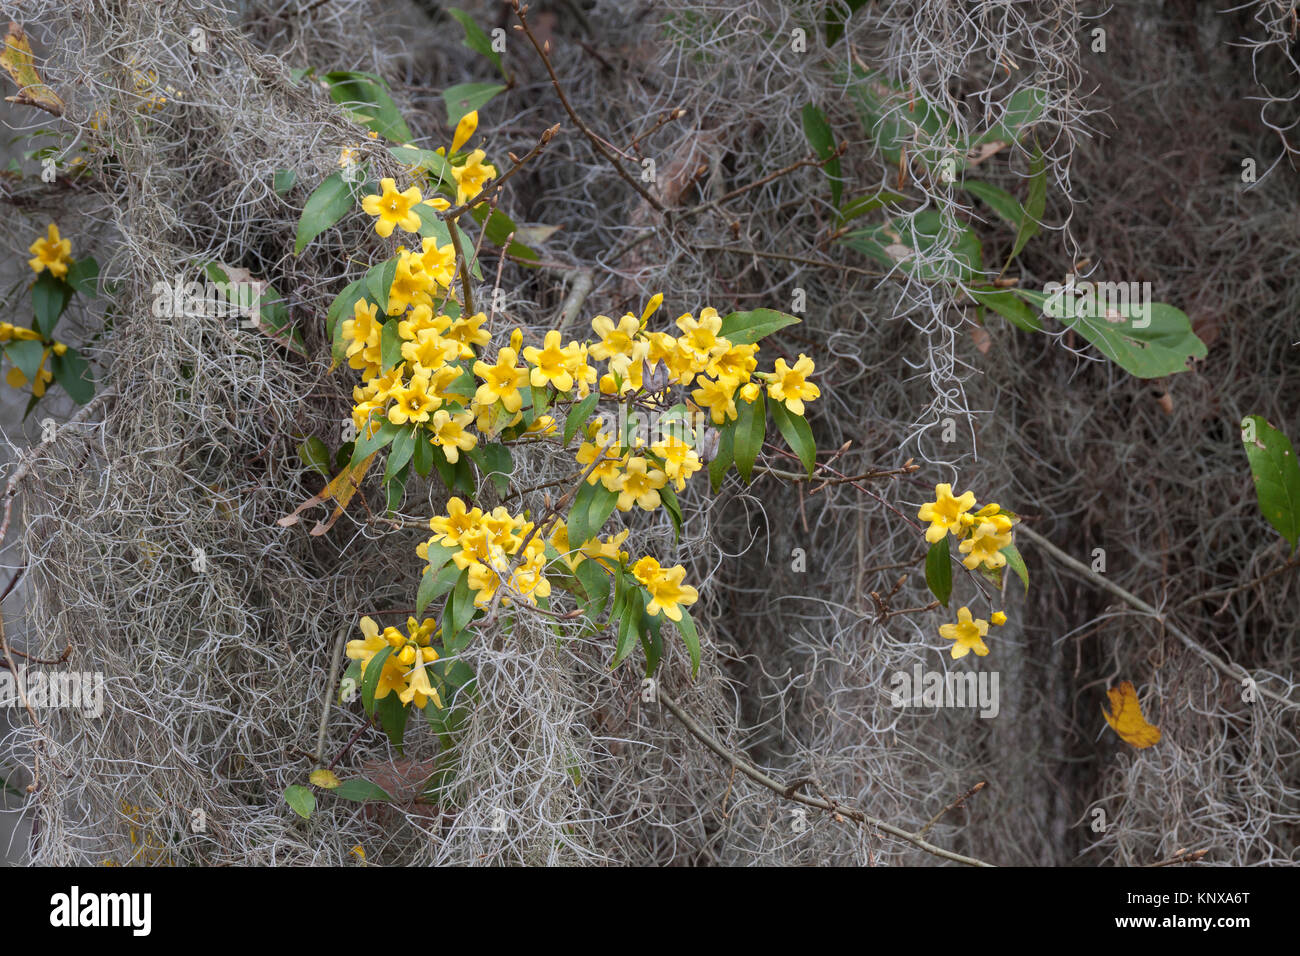 Yellow Jessamine (Gelsemium sempervirens) in Congaree National Park, South Carolina, blooming amid Spanish Moss. - Stock Image